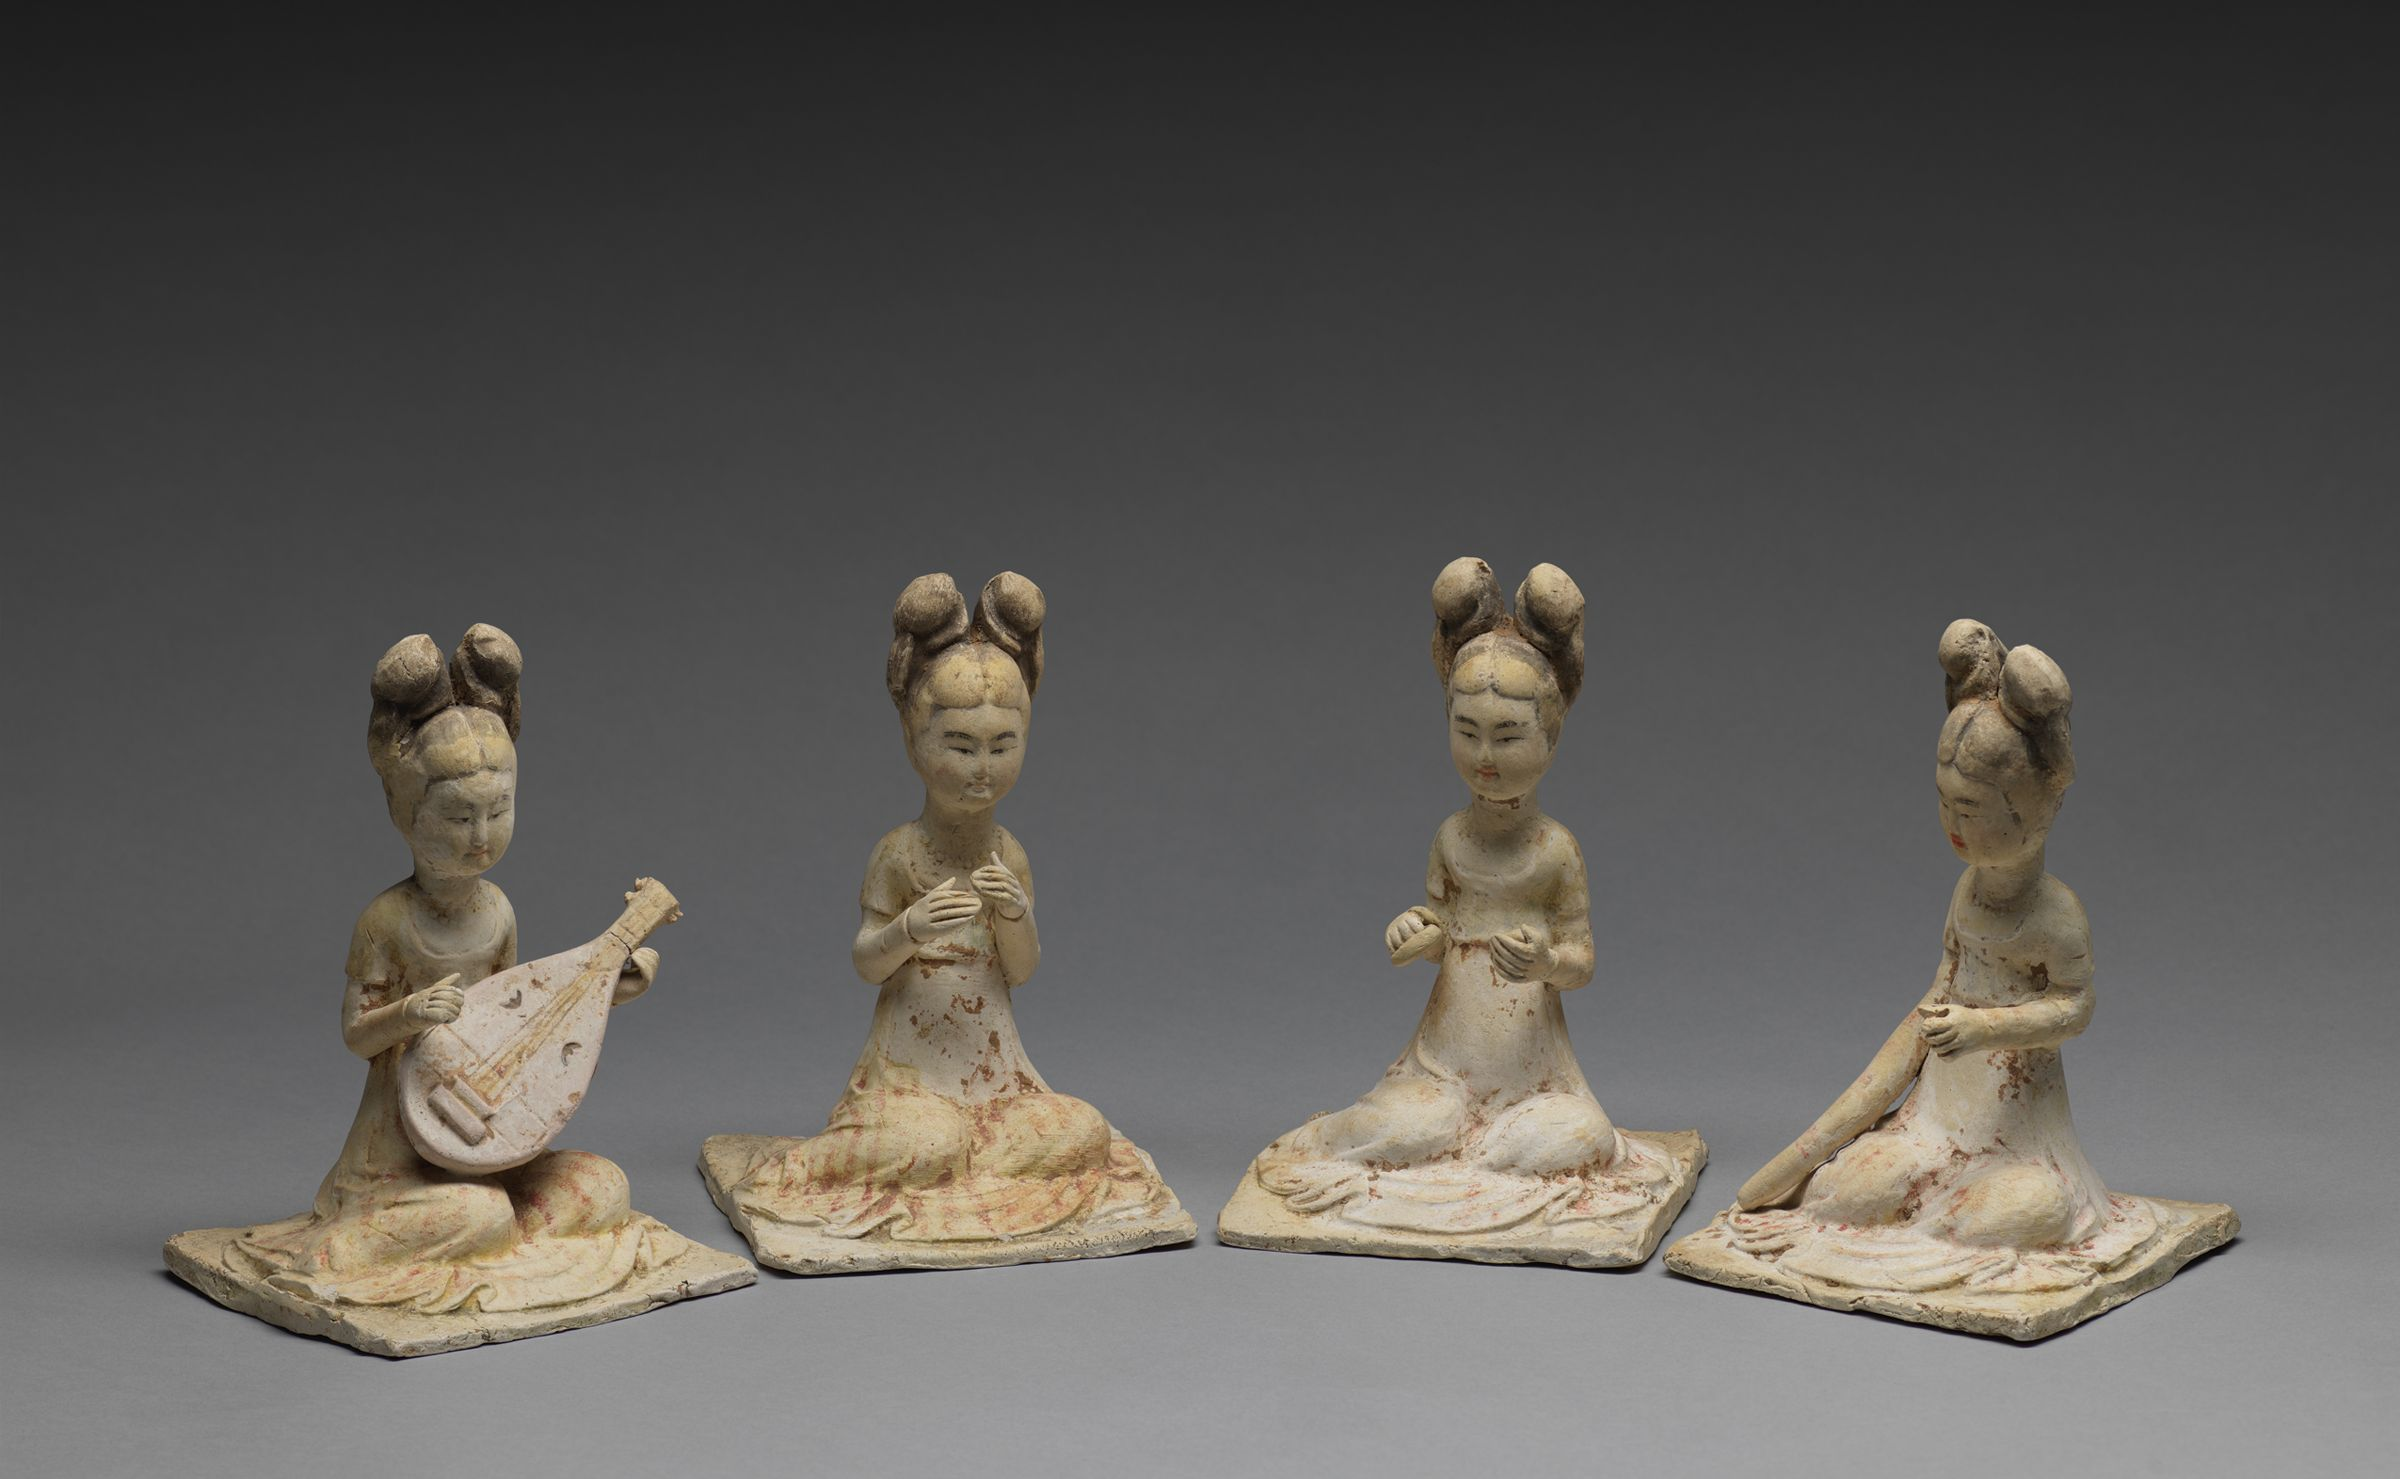 Four Kneeling, Female Court Musicians (One With A 'Pipa', Or Lute, And One With Cymbals), Each Of The Four With A High-Waisted, Striped Dress Or Skirt And With Long Hair Arranged In Two Buns